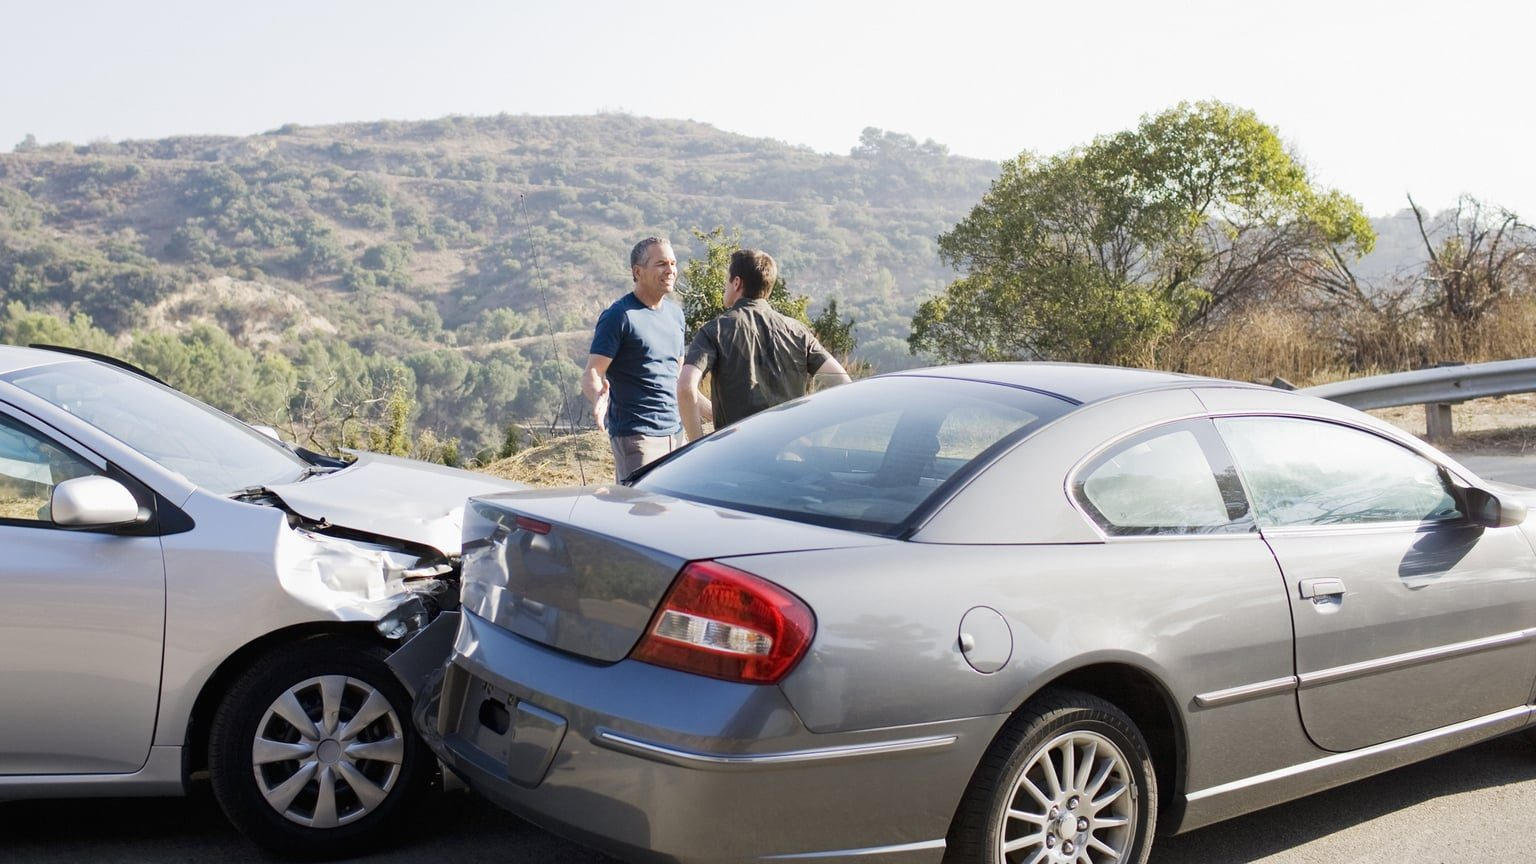 Two Men Arguing At Car Accident Scene On A Hill